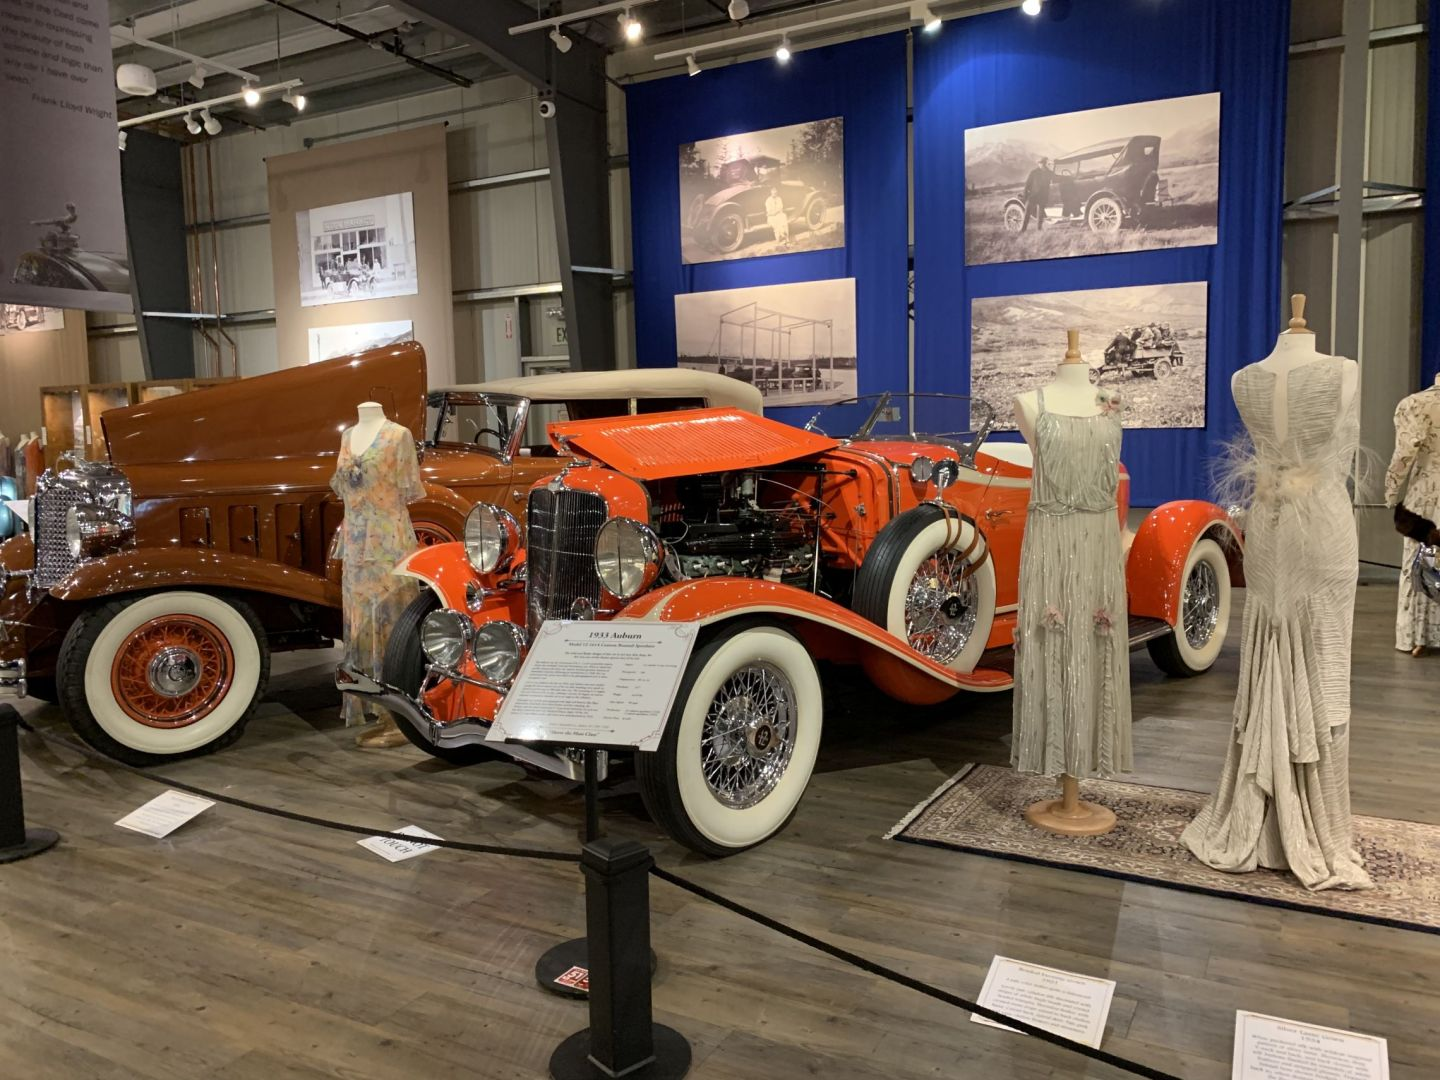 Stop by the Auto Museum which features over 80 vehicles, including horse carriages, steamers, electric cars, midget racers and 30s classics.